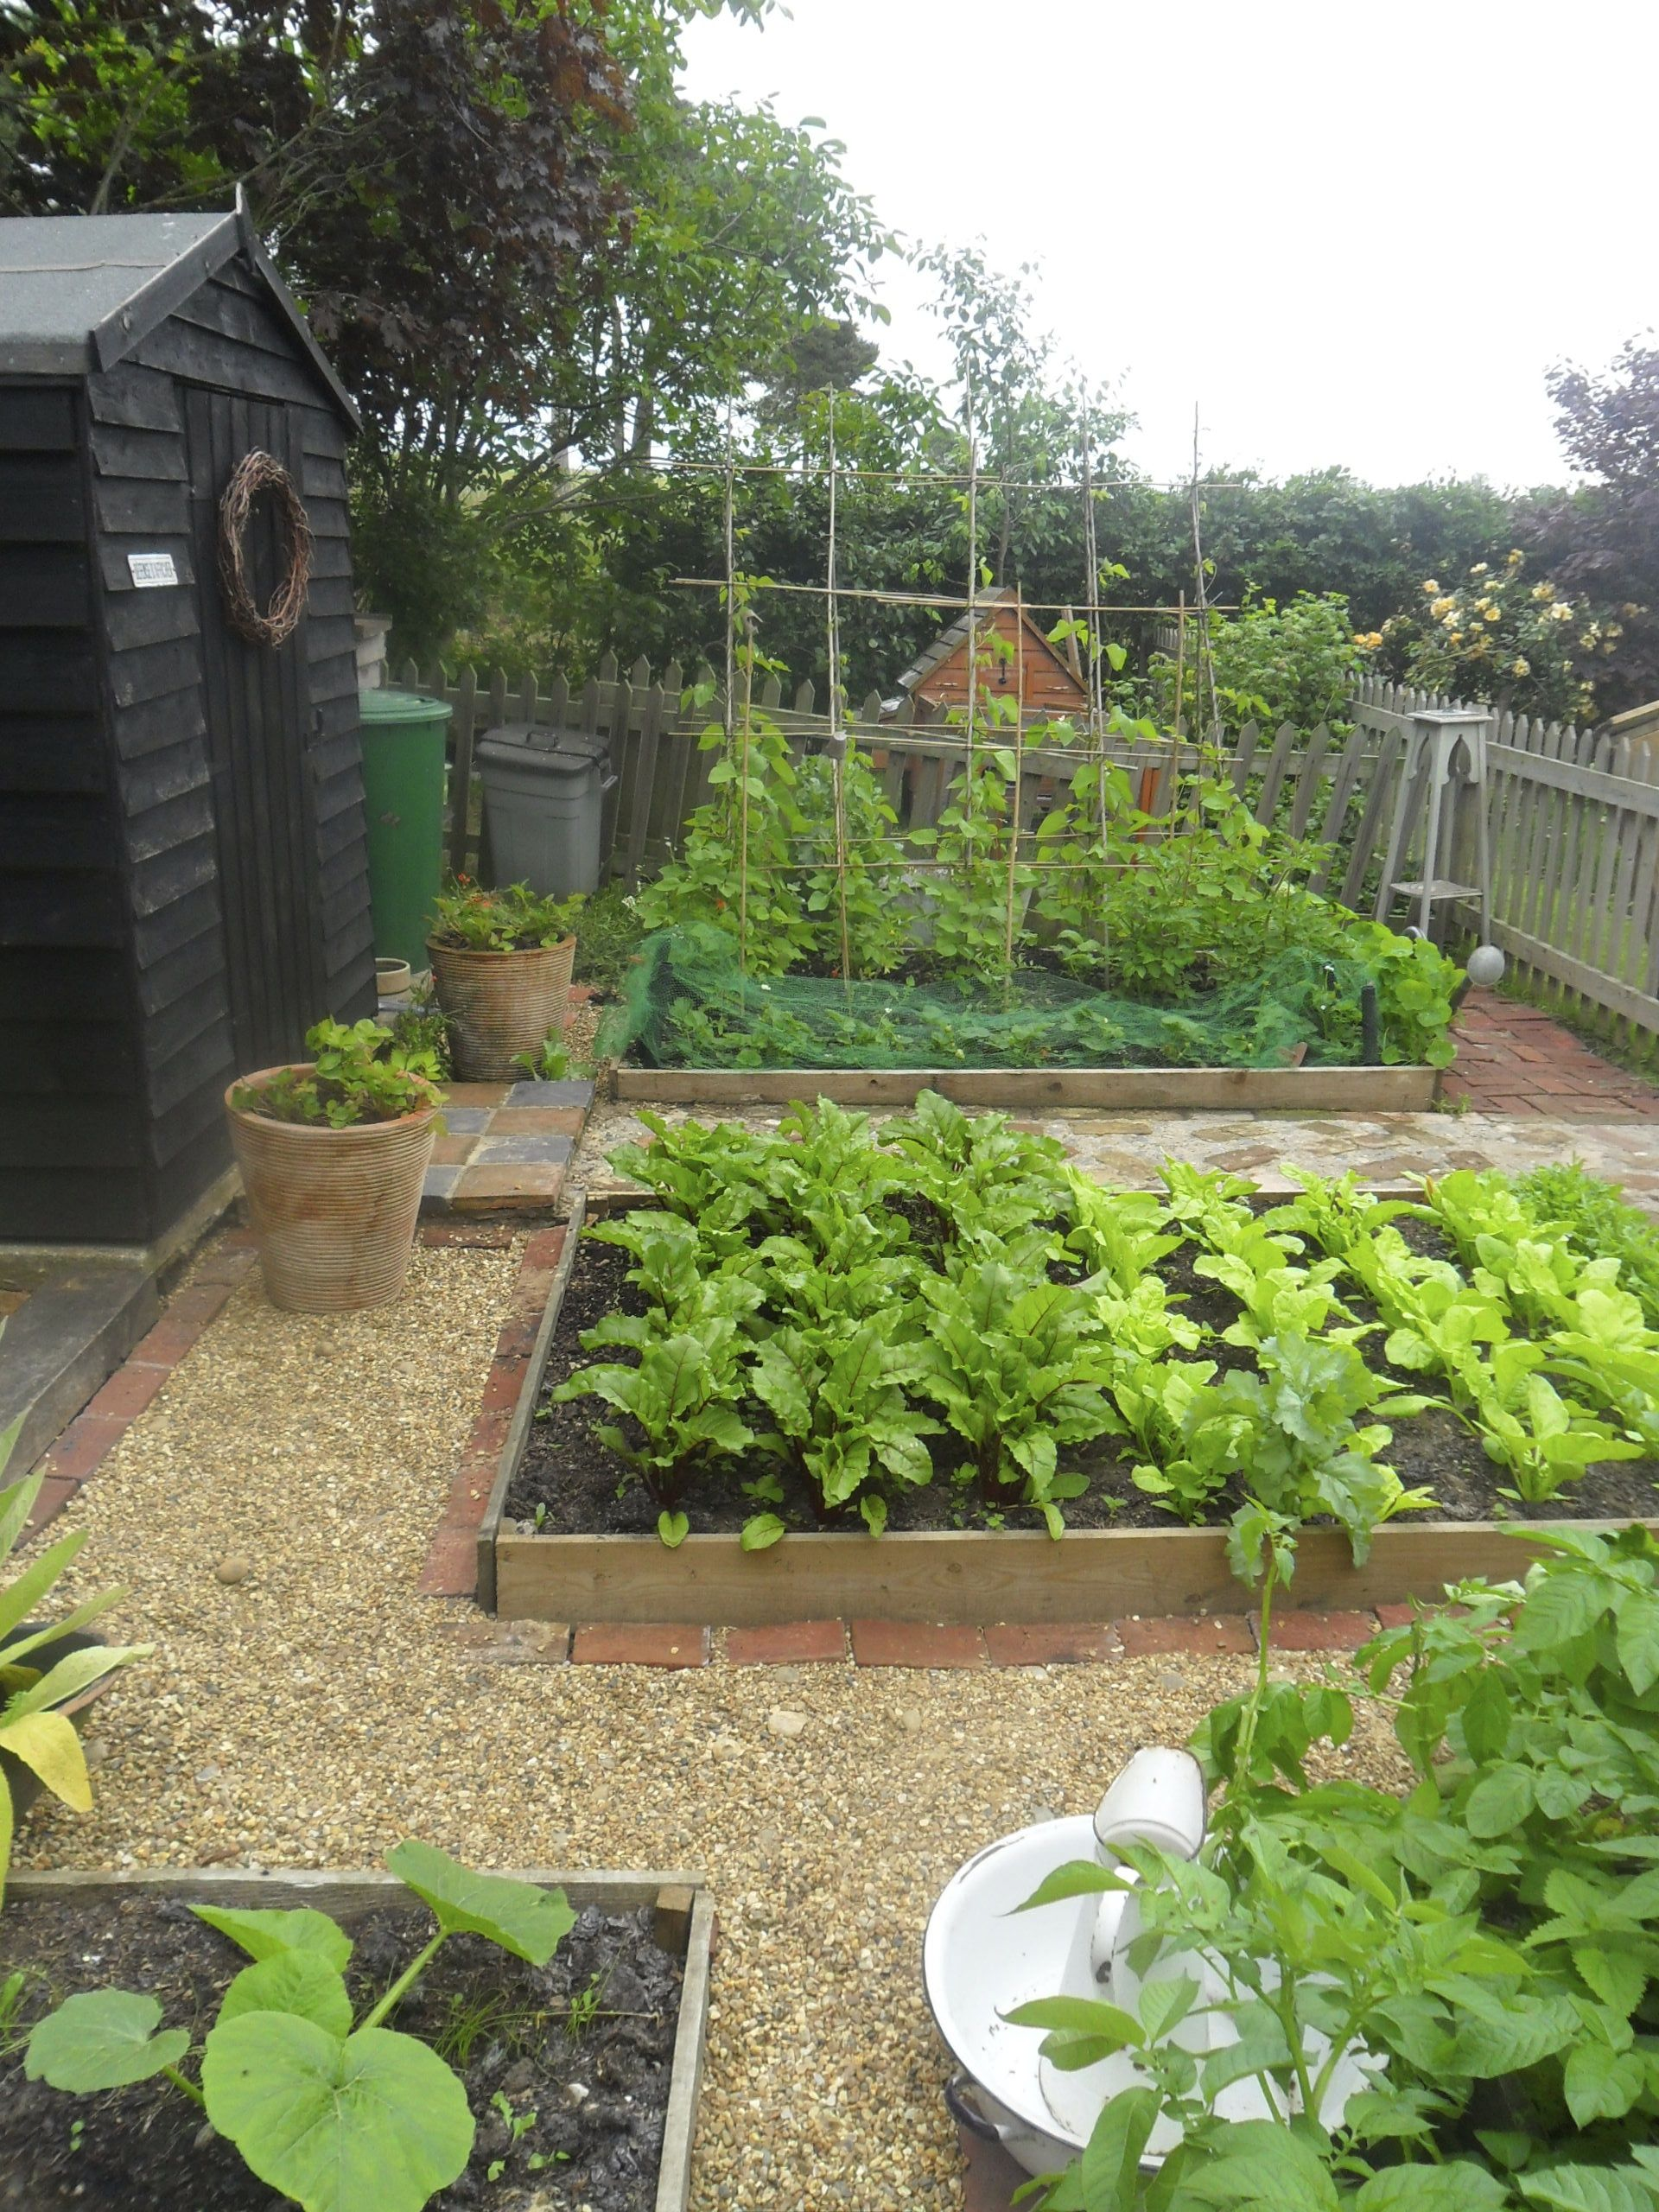 Vegetable Beds In A Charming Cottage Garden Setting